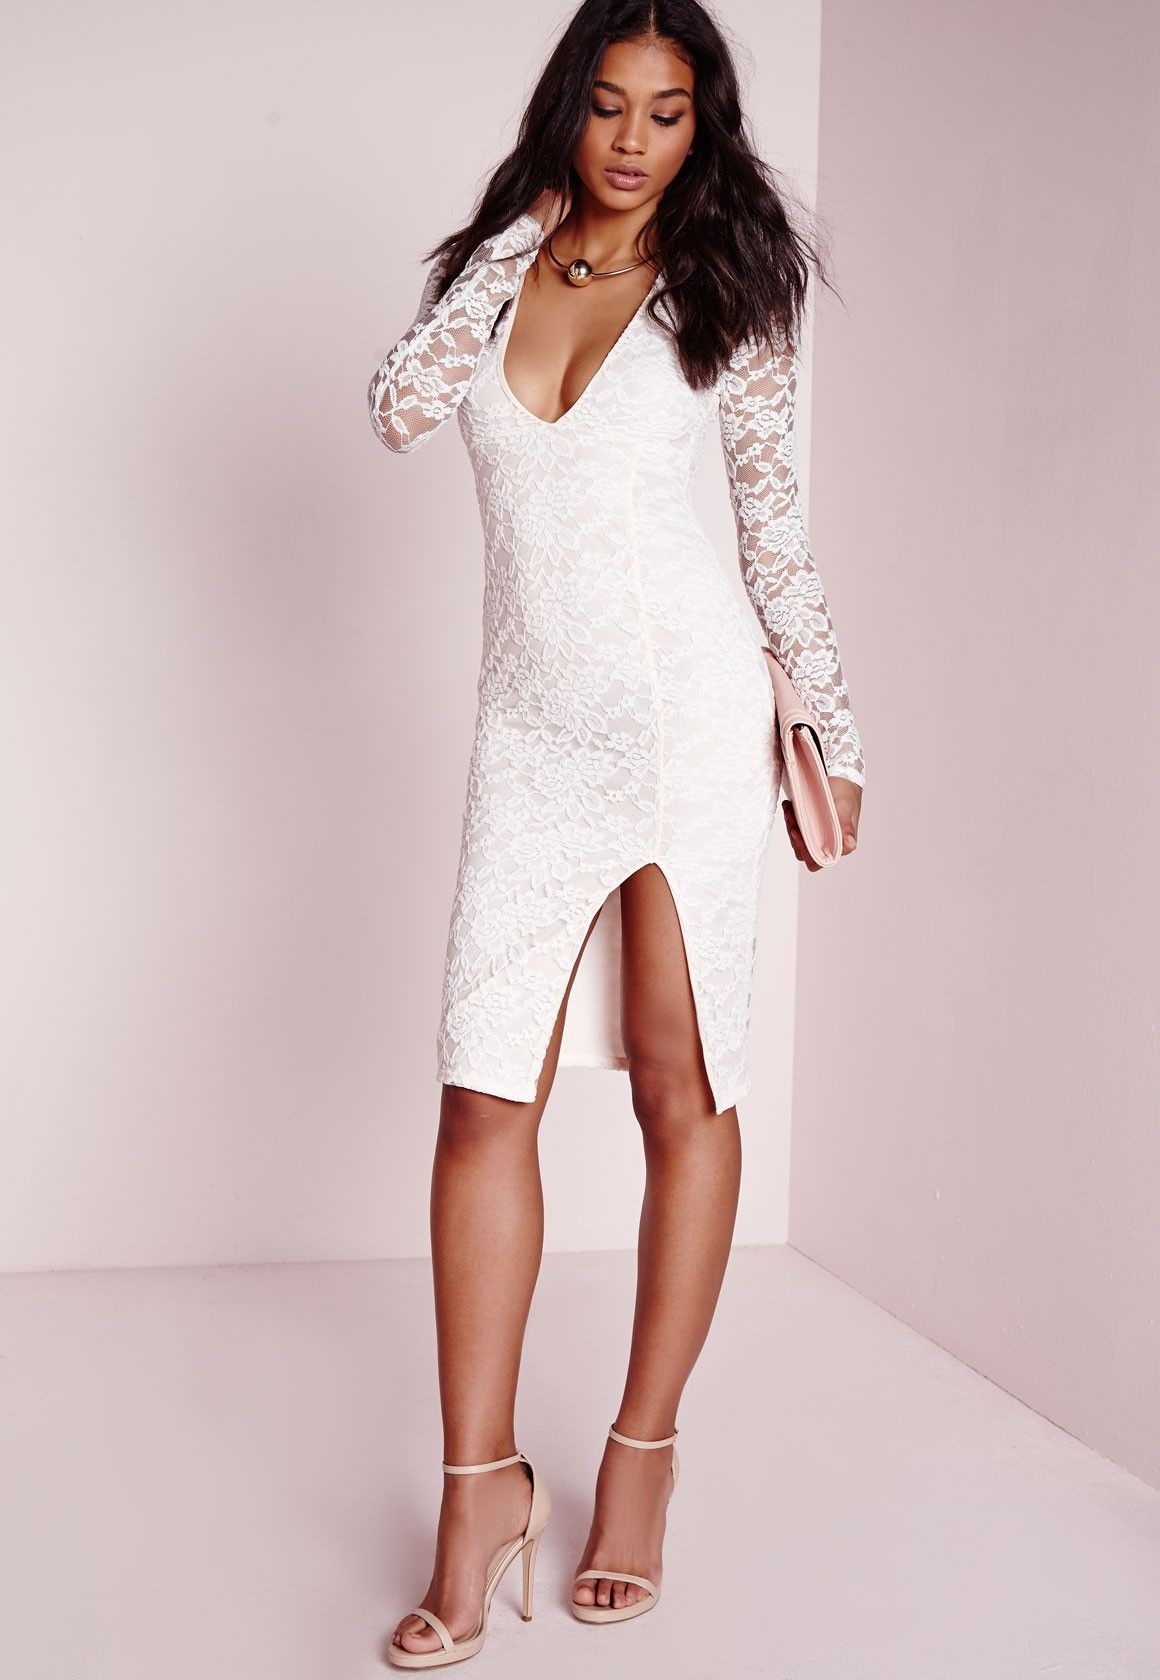 Lavish in lace in this romantic style midi dress this party season. With seriously sexy figure flattering nude fabric with white lace over lay, you can ensure all eyes are on you at the party. The plunge v-neck feature , long lace sleeves a...